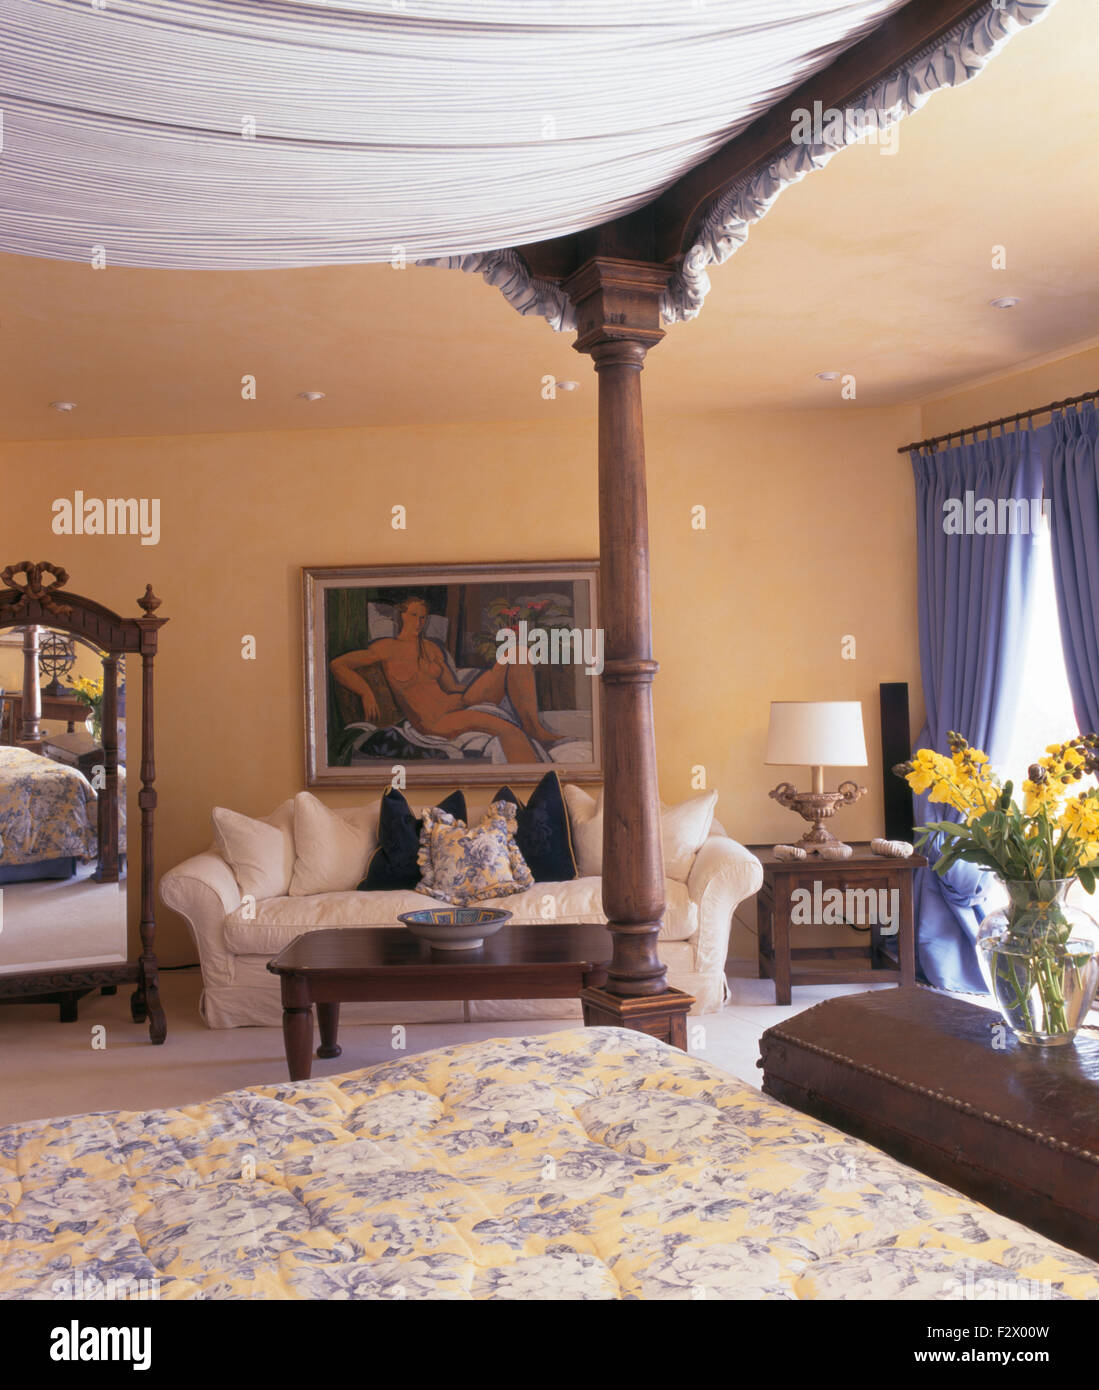 Four poster bed and cream sofa in Spanish country bedroom - Stock Image